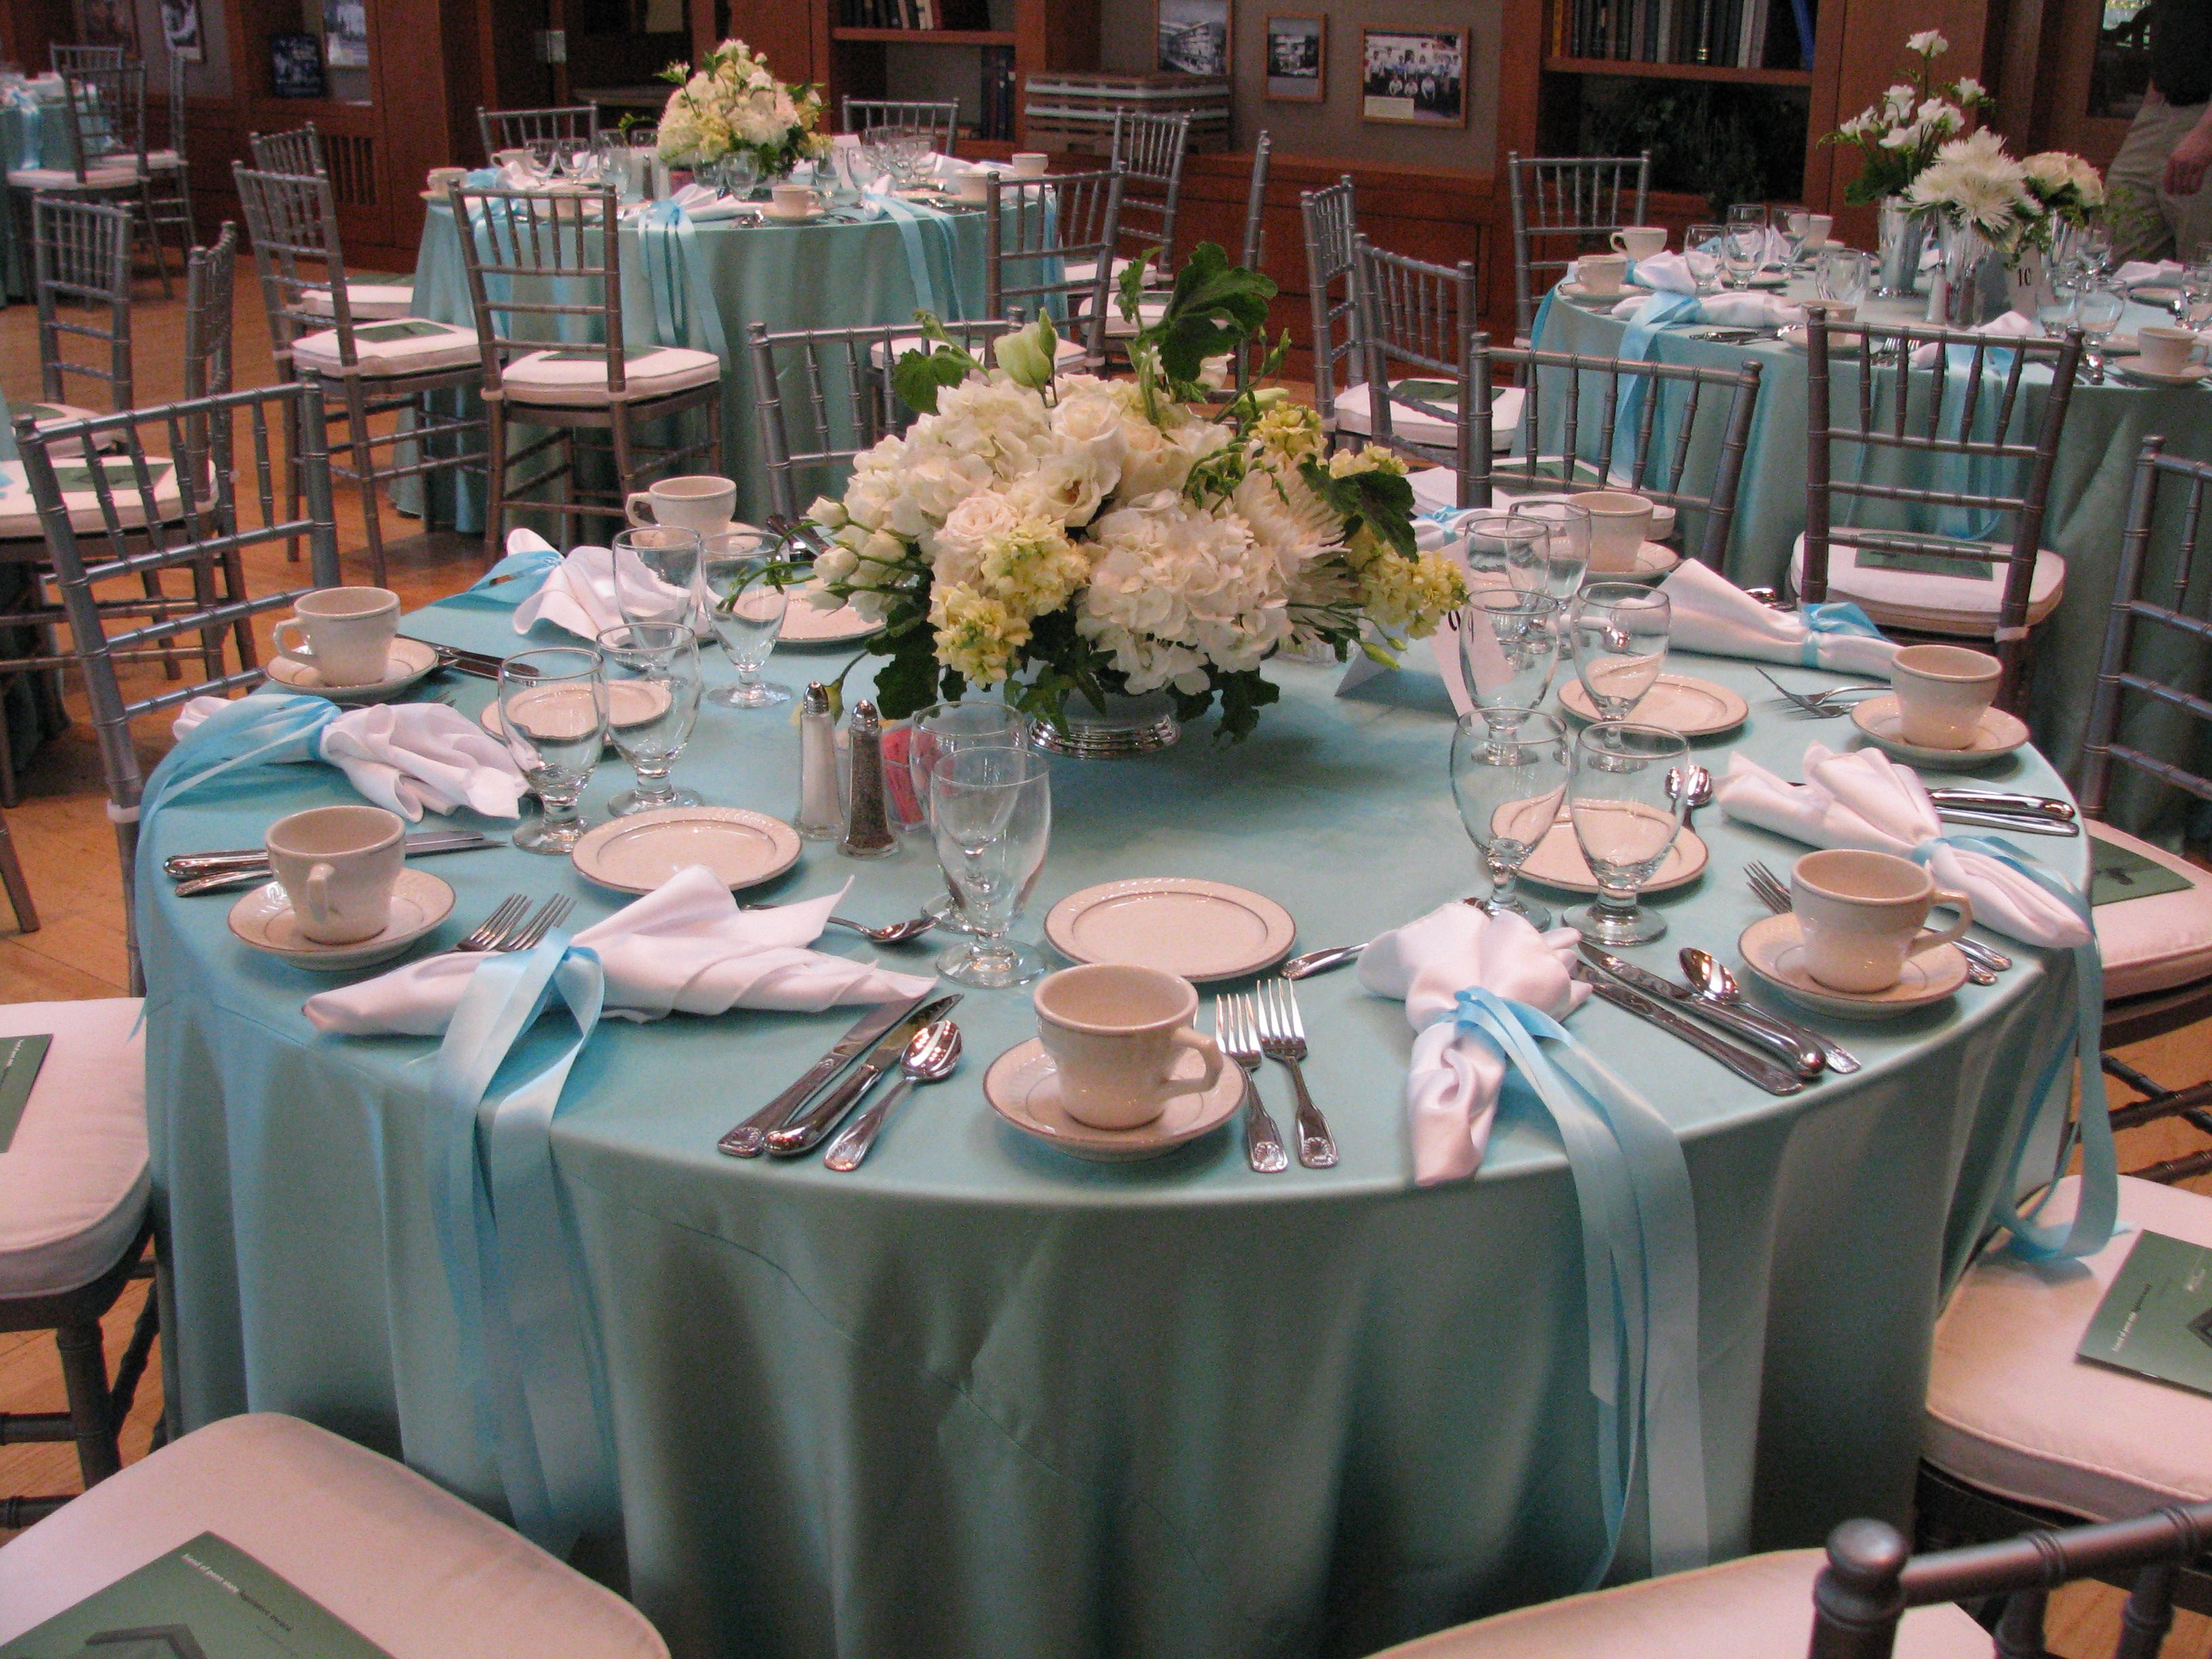 Tiffany Blue Themed Luncheon Using Tiffany Blue Satin Tablecloths And  Silver Chiavari Chairs With White Hydrangeas